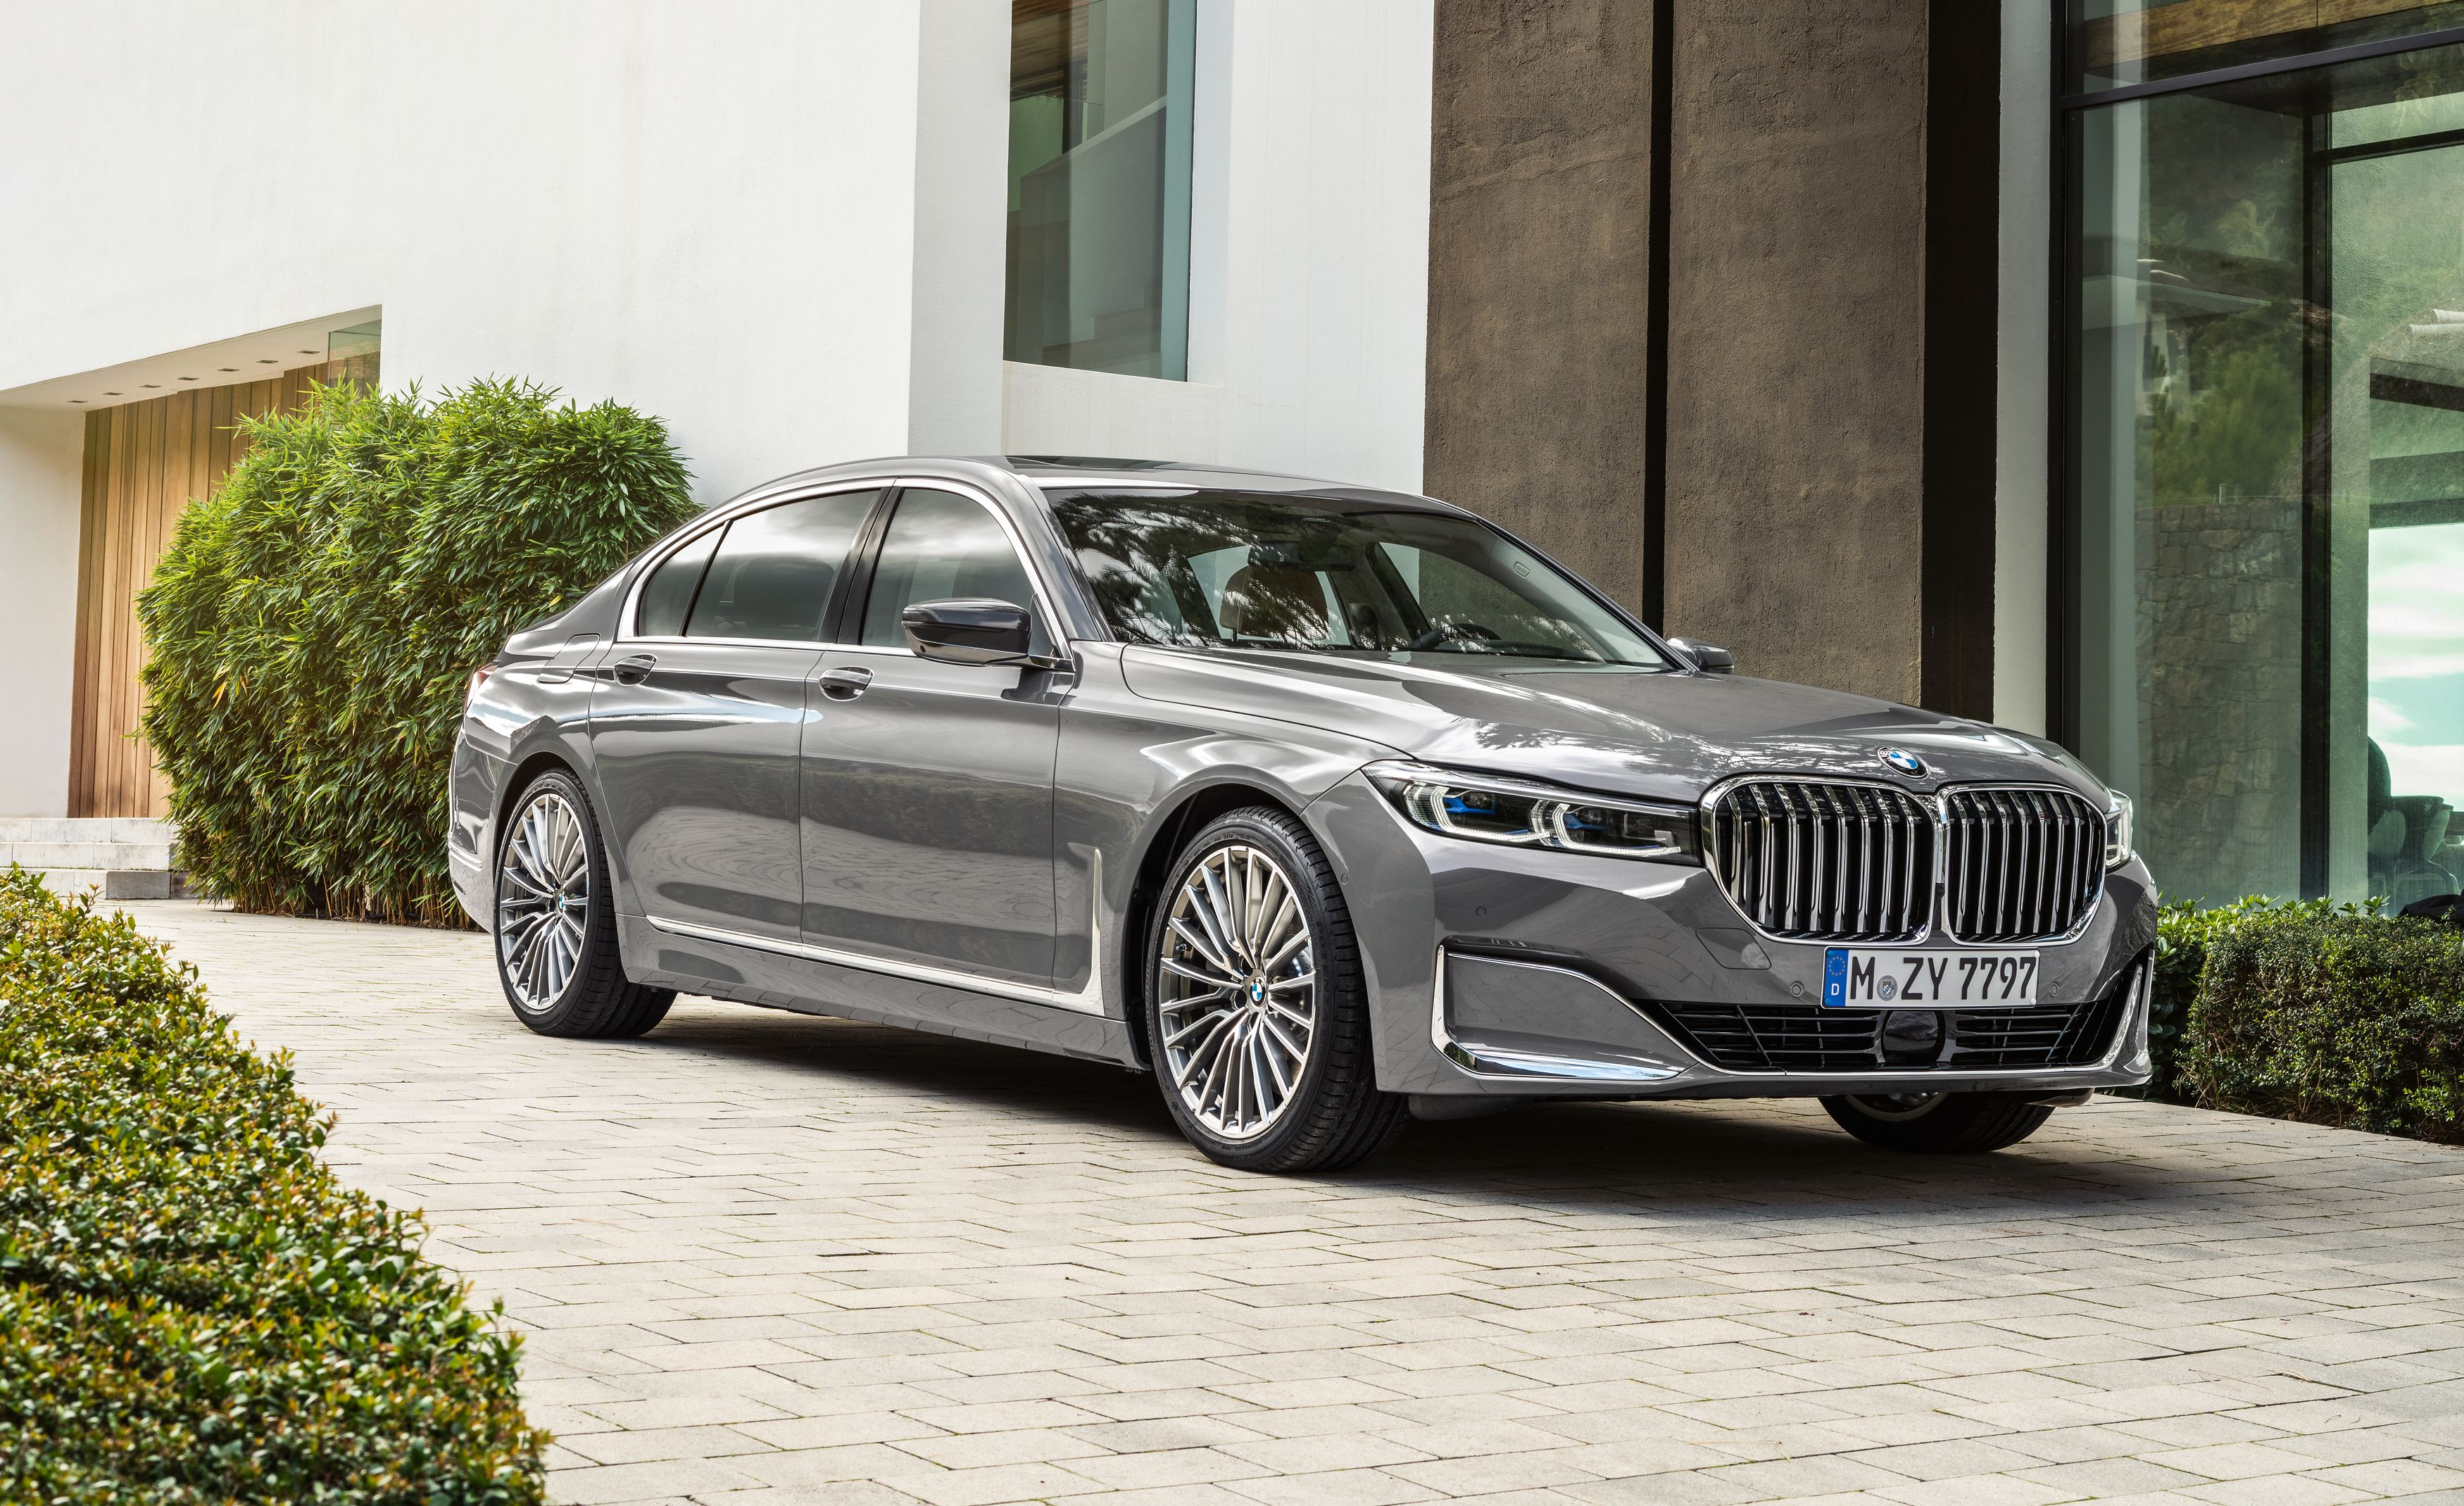 The 2020 Bmw 7 Series Sedan S Kidney Grille Is 40 Percent Bigger